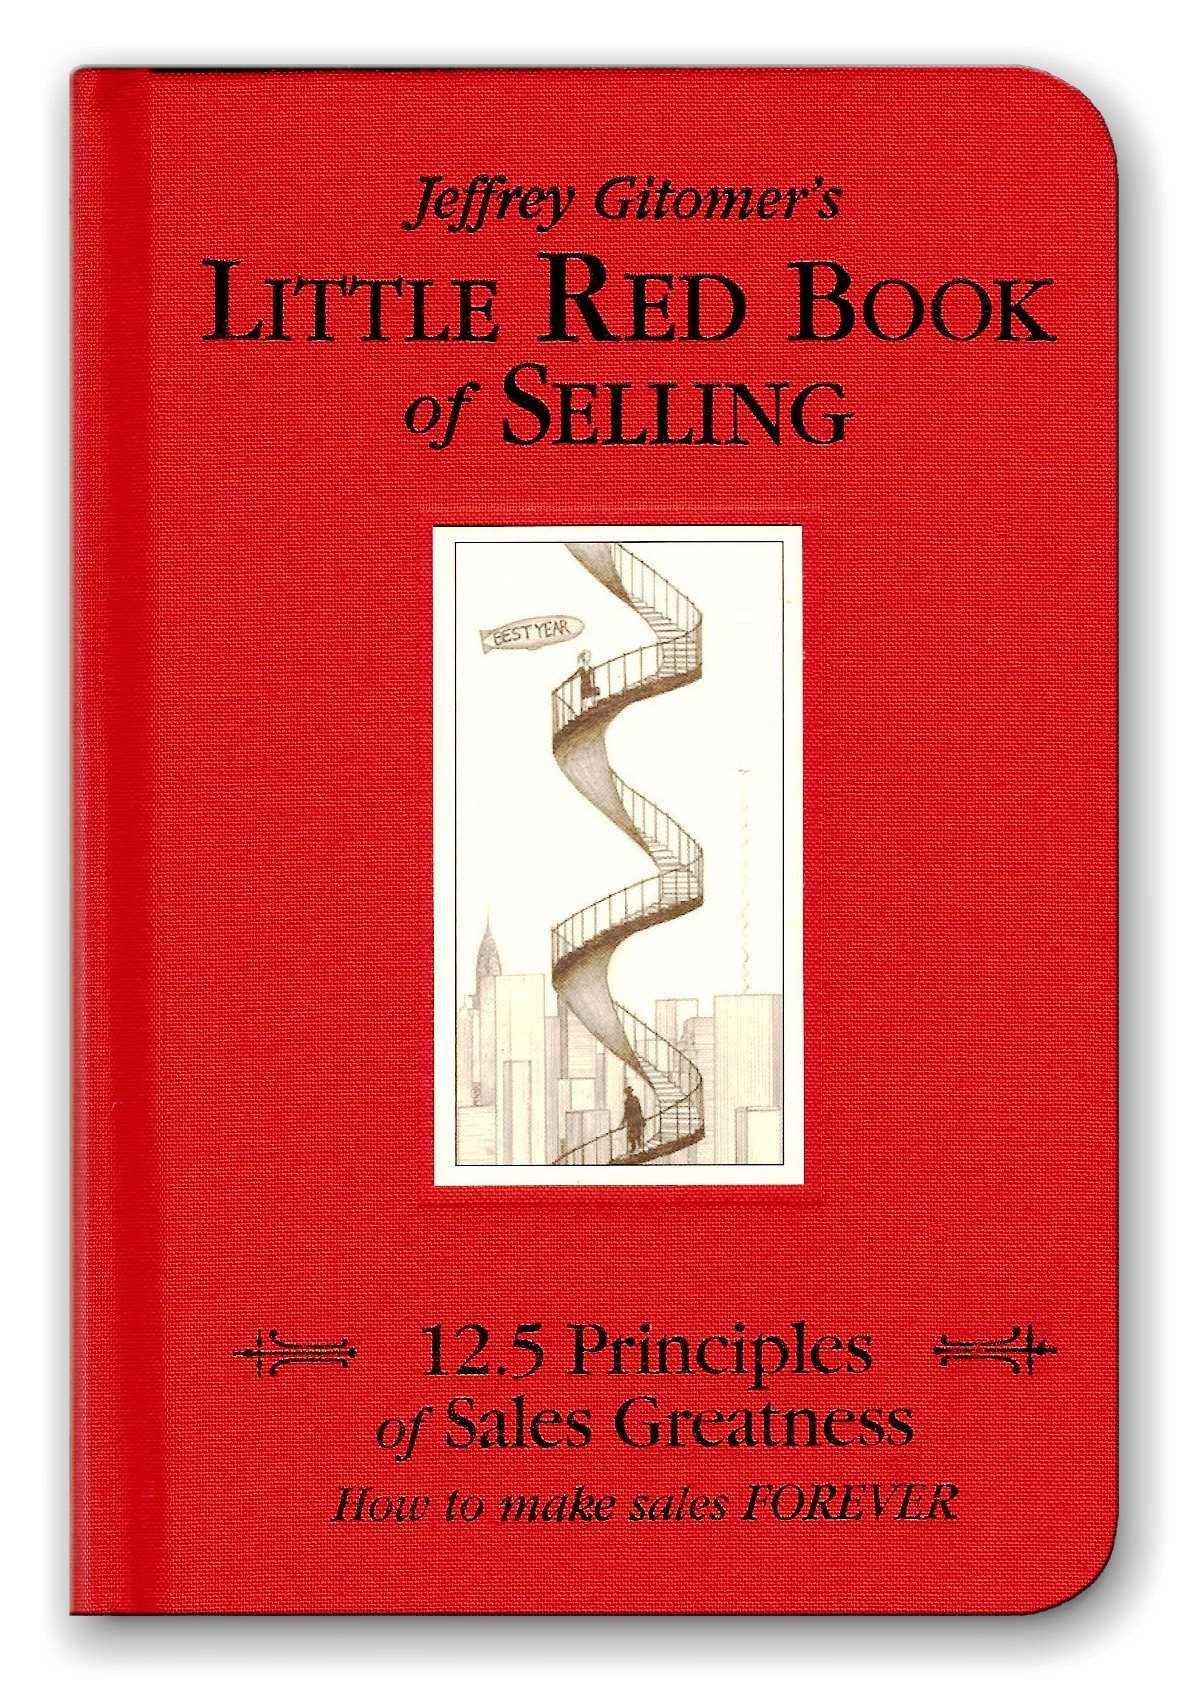 Description of workrite willow monitor arm willow is specifically - Red Book